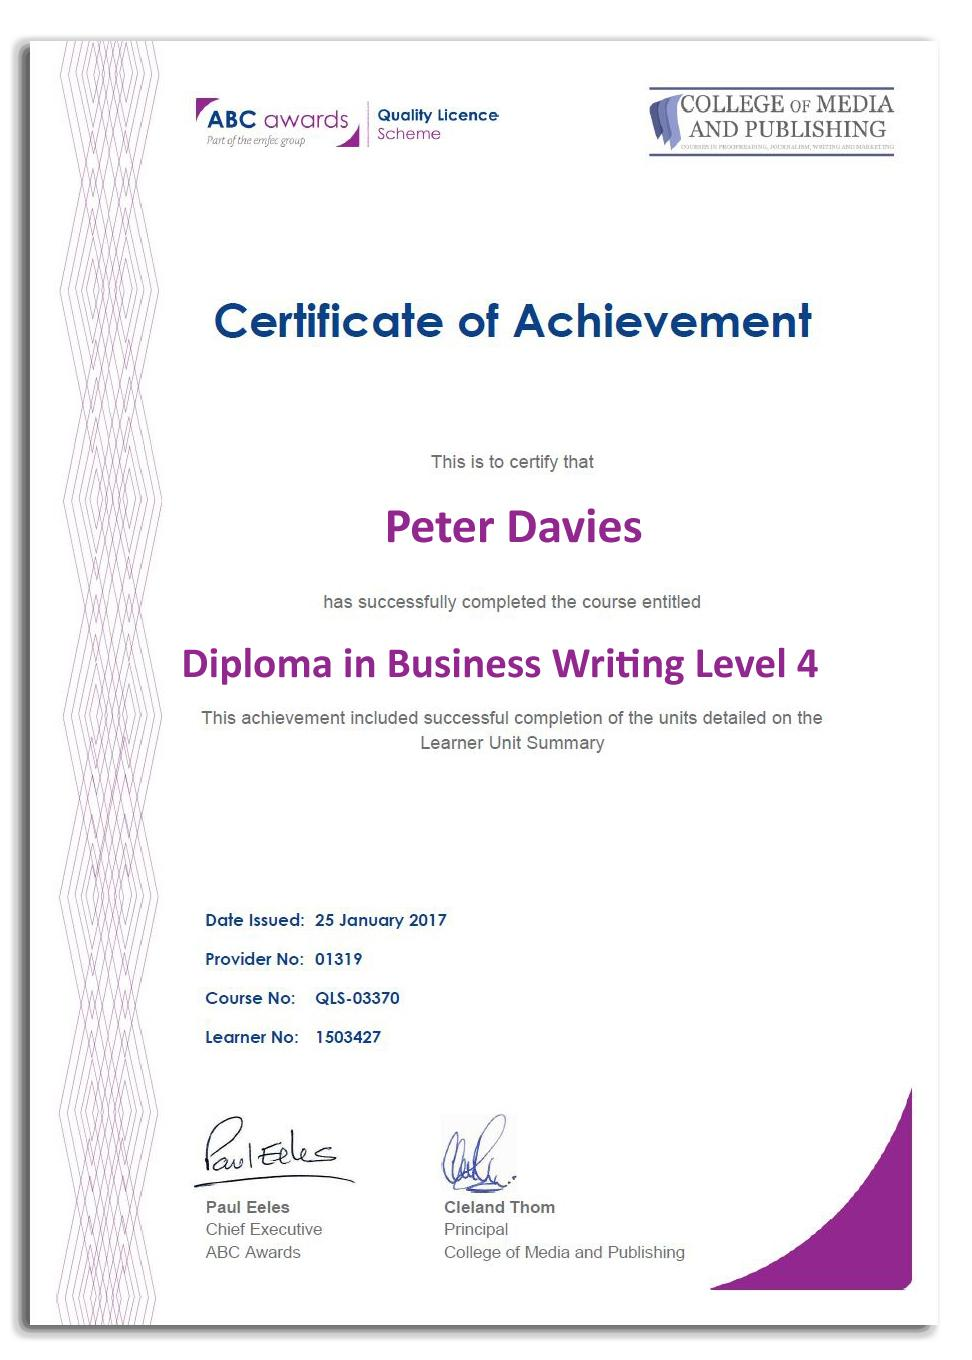 Business writing course certificate